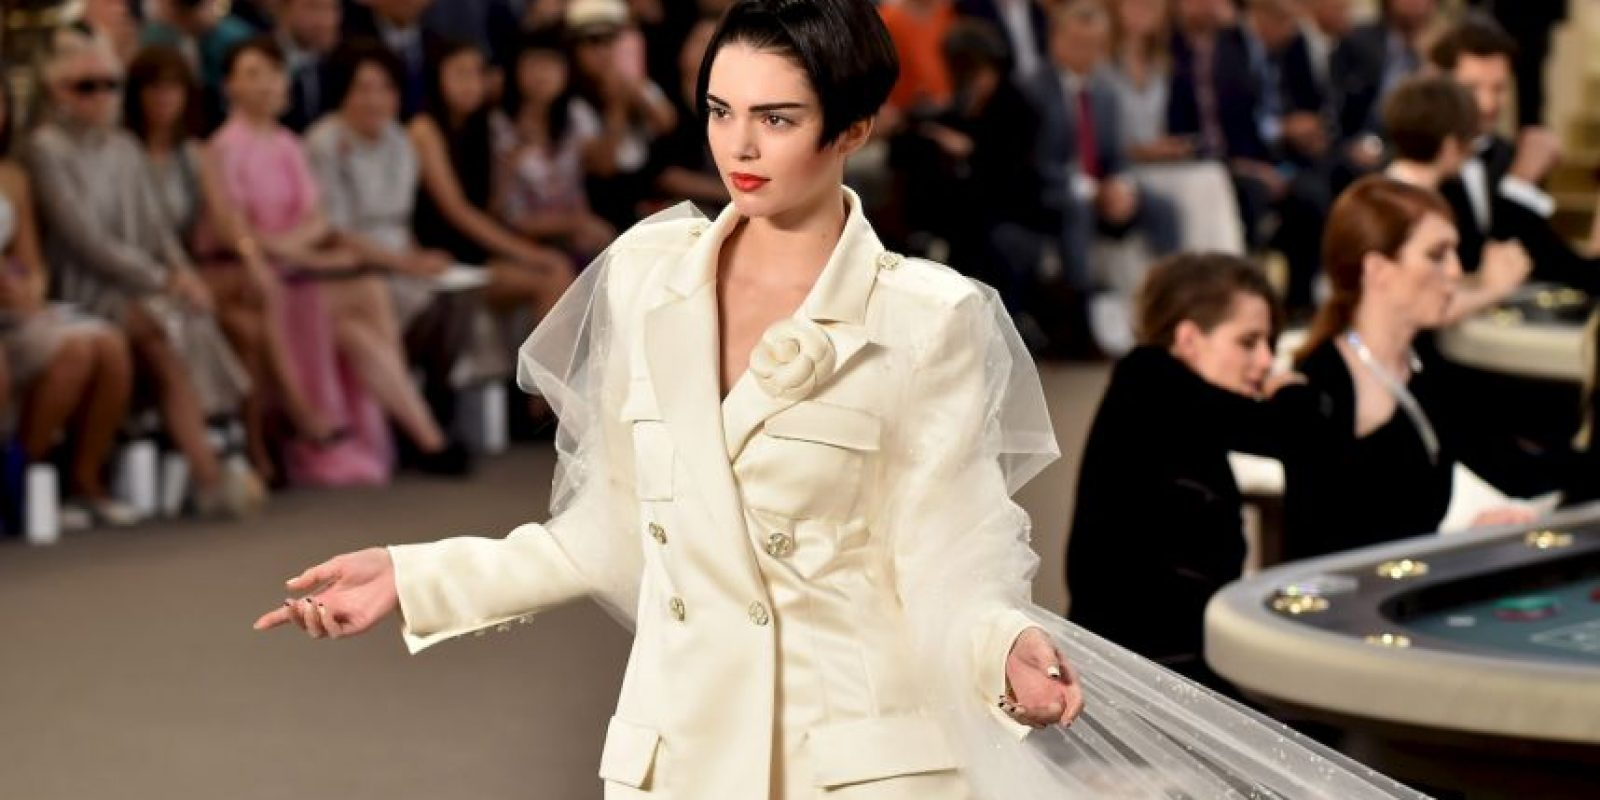 Lució el traje de novia para Chanel Foto: Getty Images